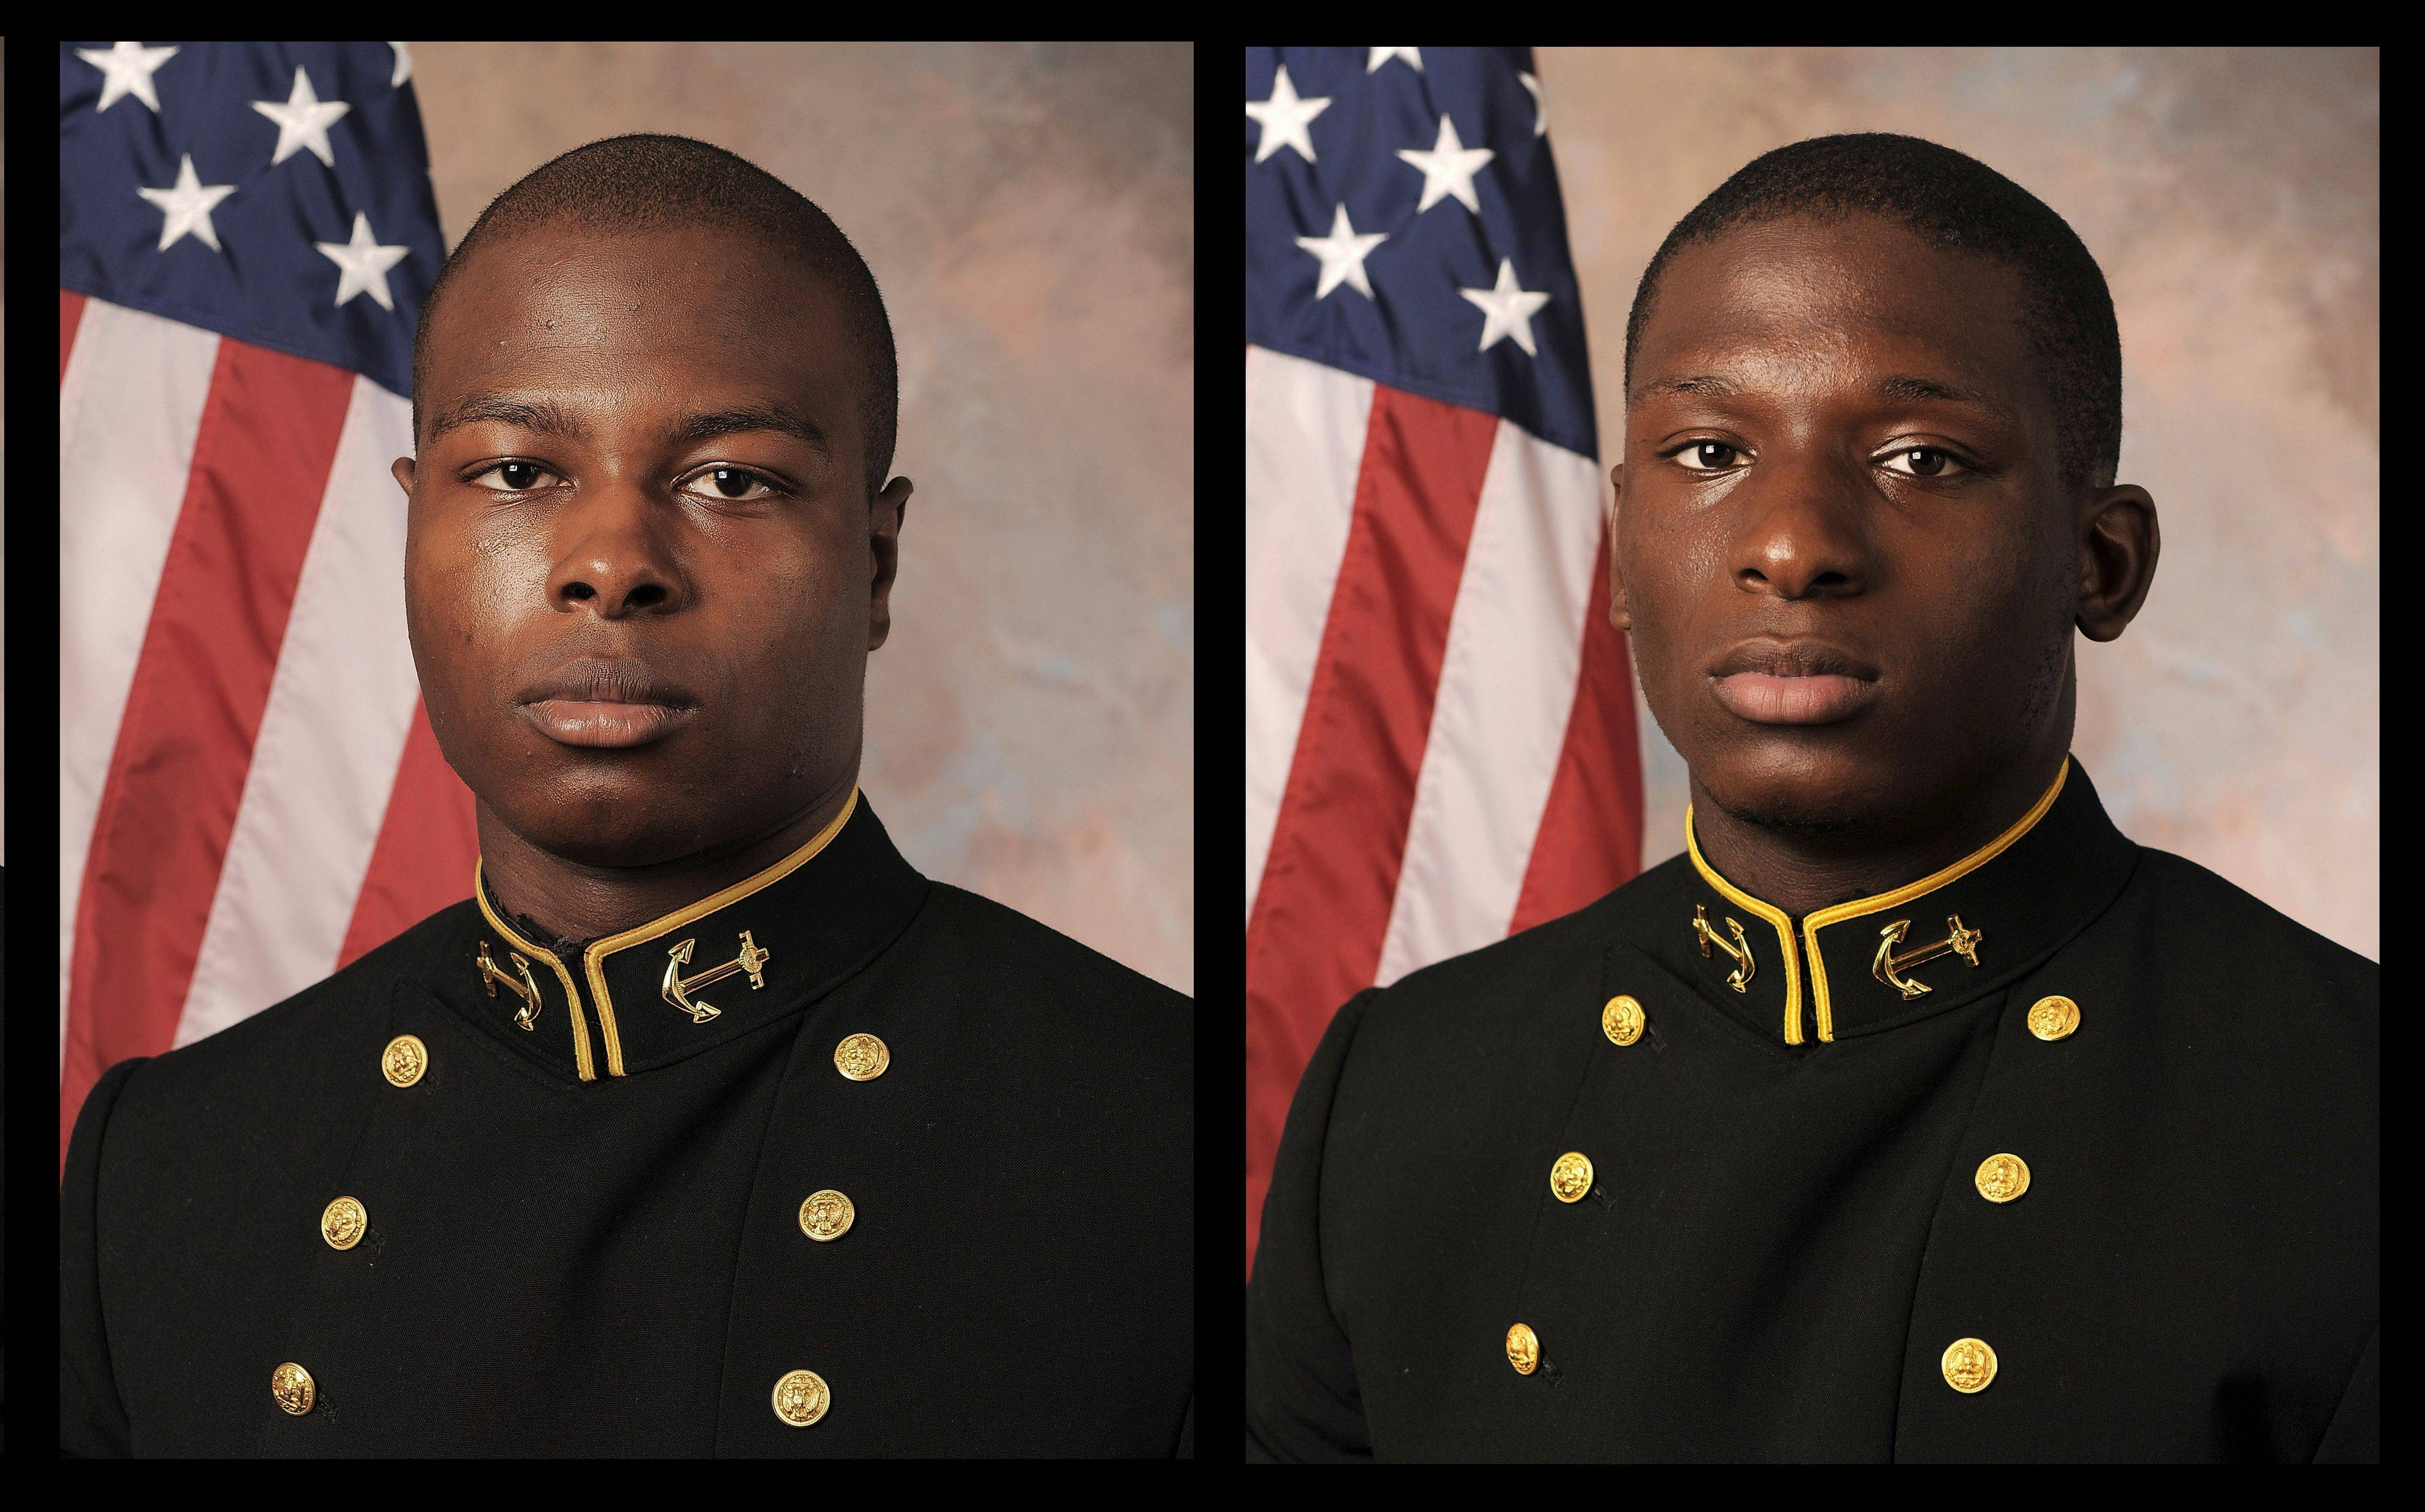 Midshipman Eric Graham, left, and Midshipman Josh Tate will face a court-martial in an alleged sexual assault at an off-campus party while a third will not, the U.S. Naval Academy superintendent said Thursday.